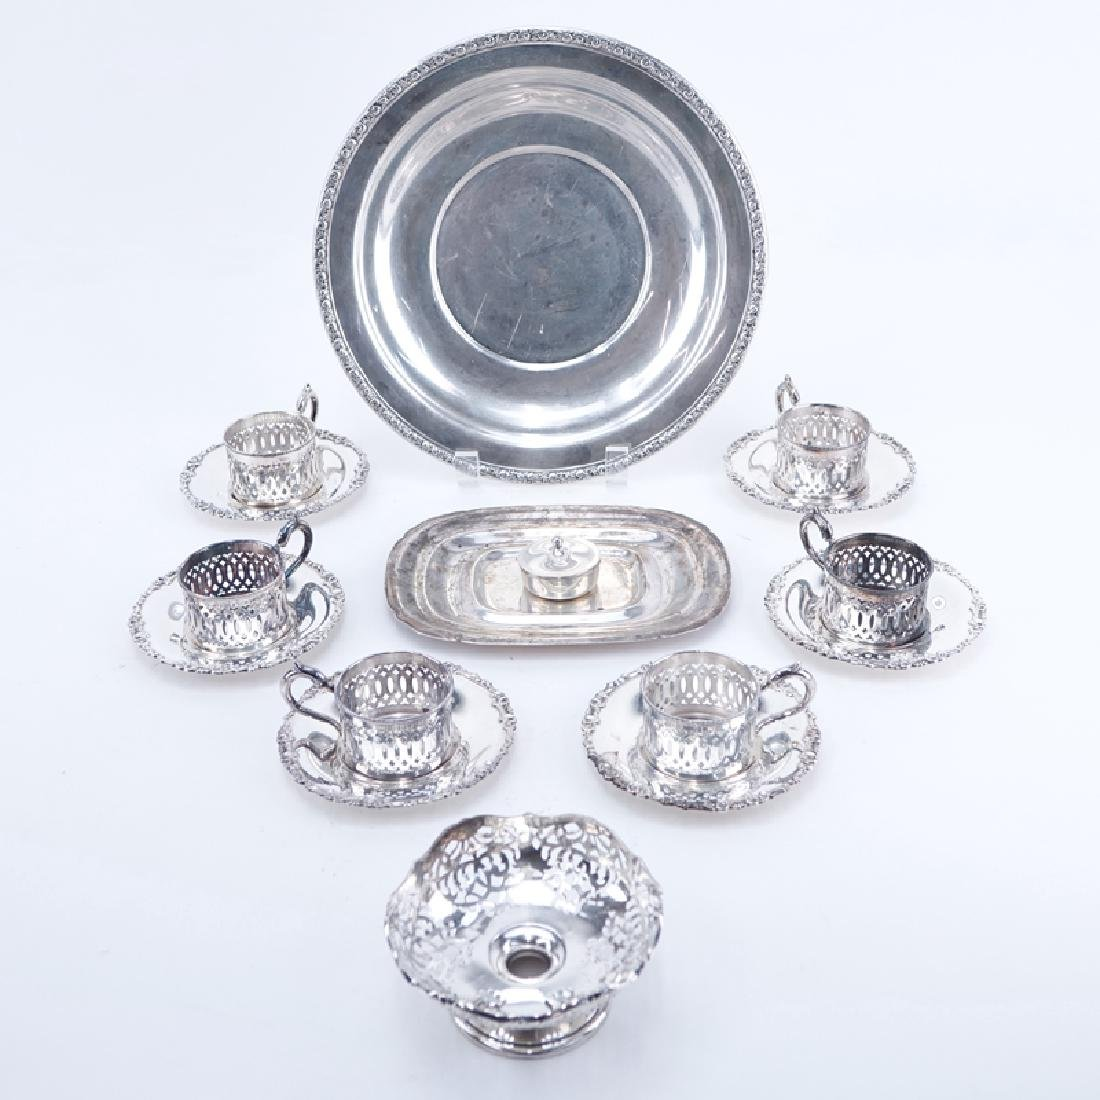 Collection Of Sterling Silver Table Top Items.